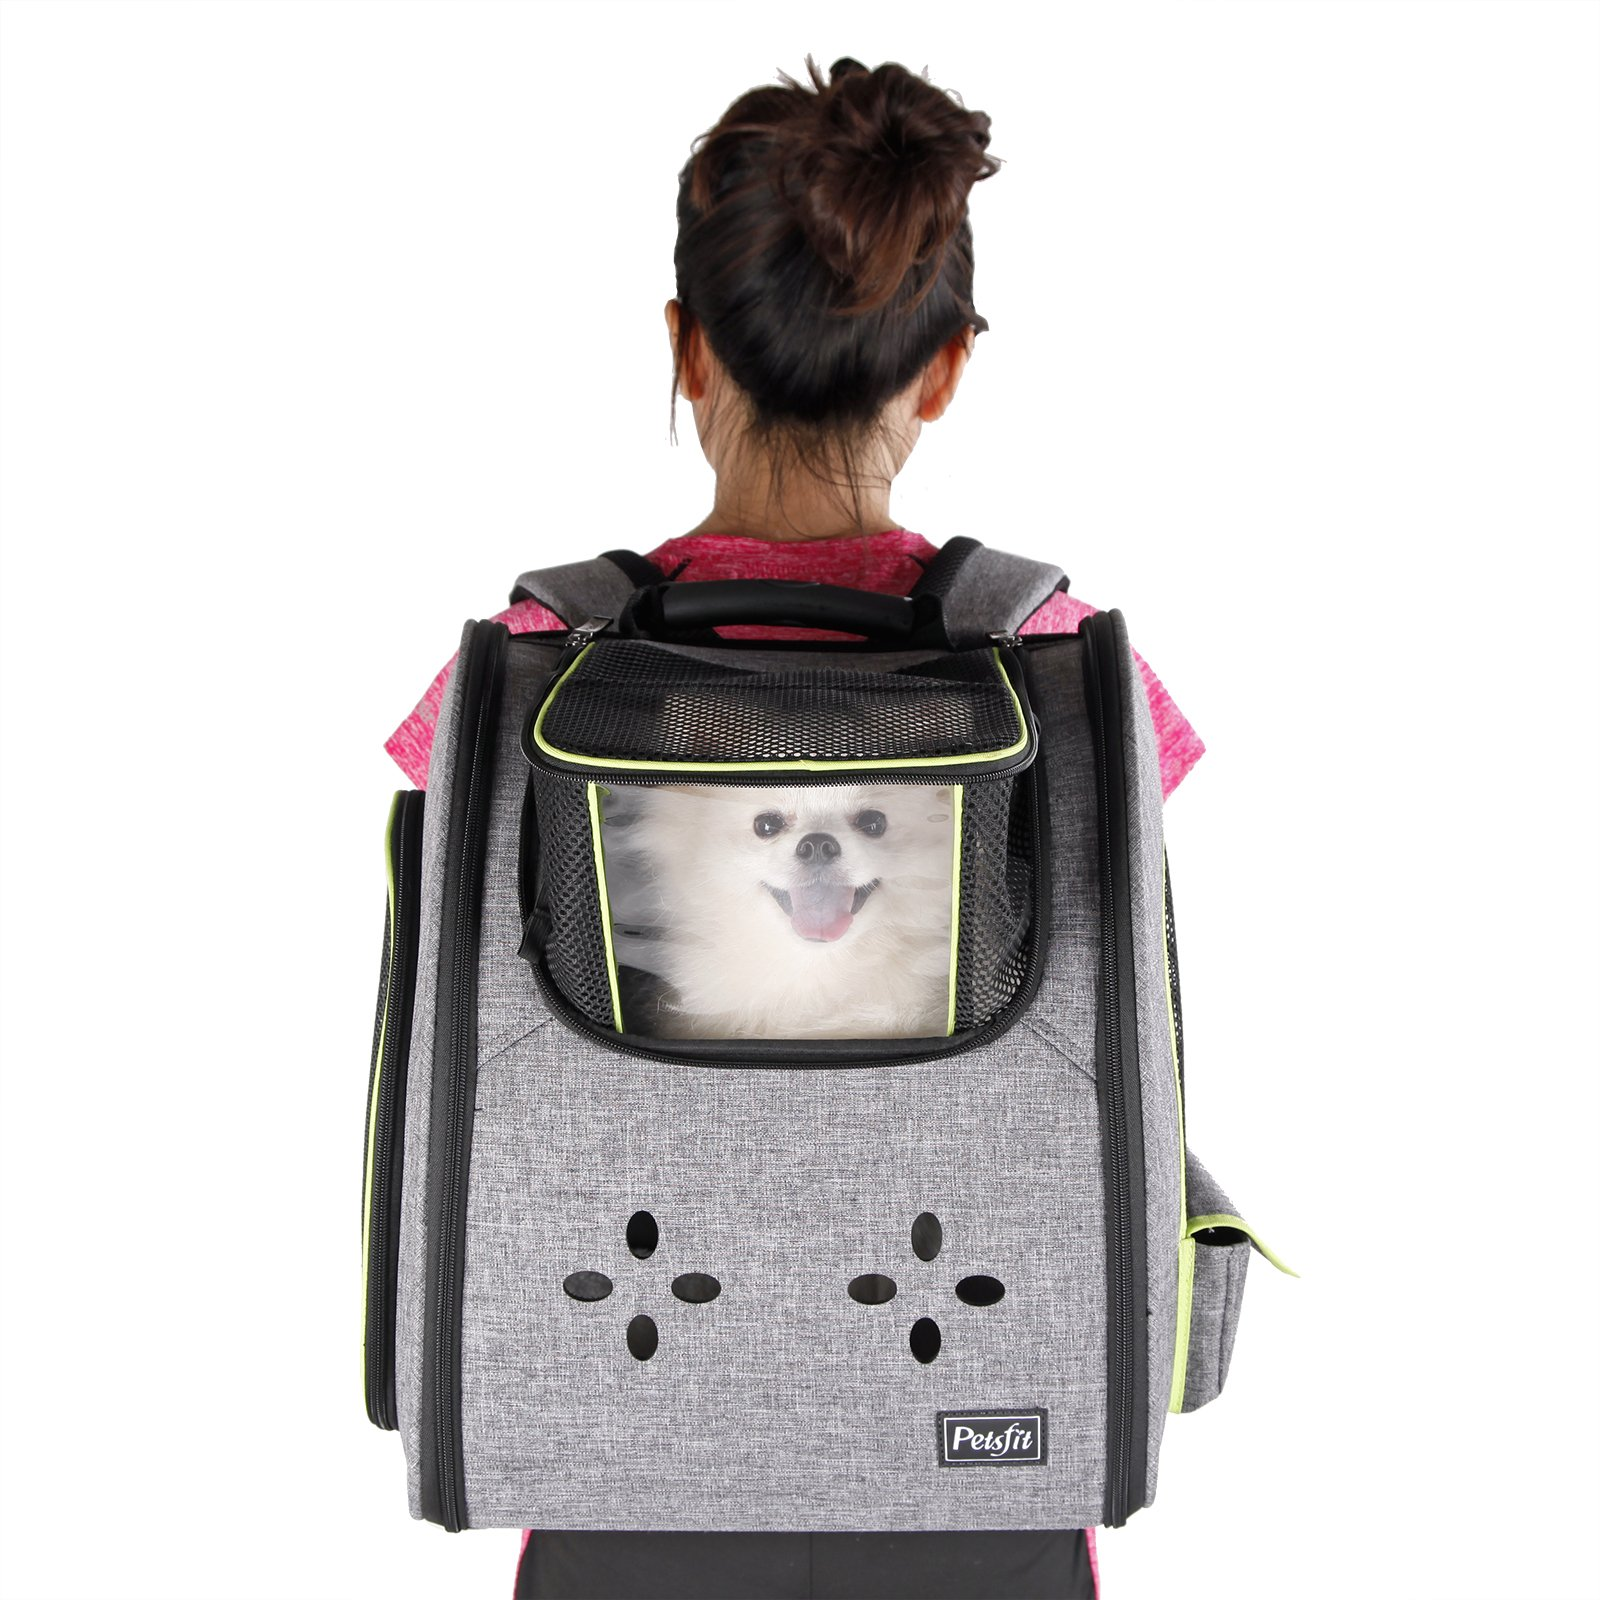 Petsfit Dogs Carriers Backpack for Cat/Dog/Guinea Pig/Bunny Durable and Comfortable Pet Bag by Petsfit (Image #8)